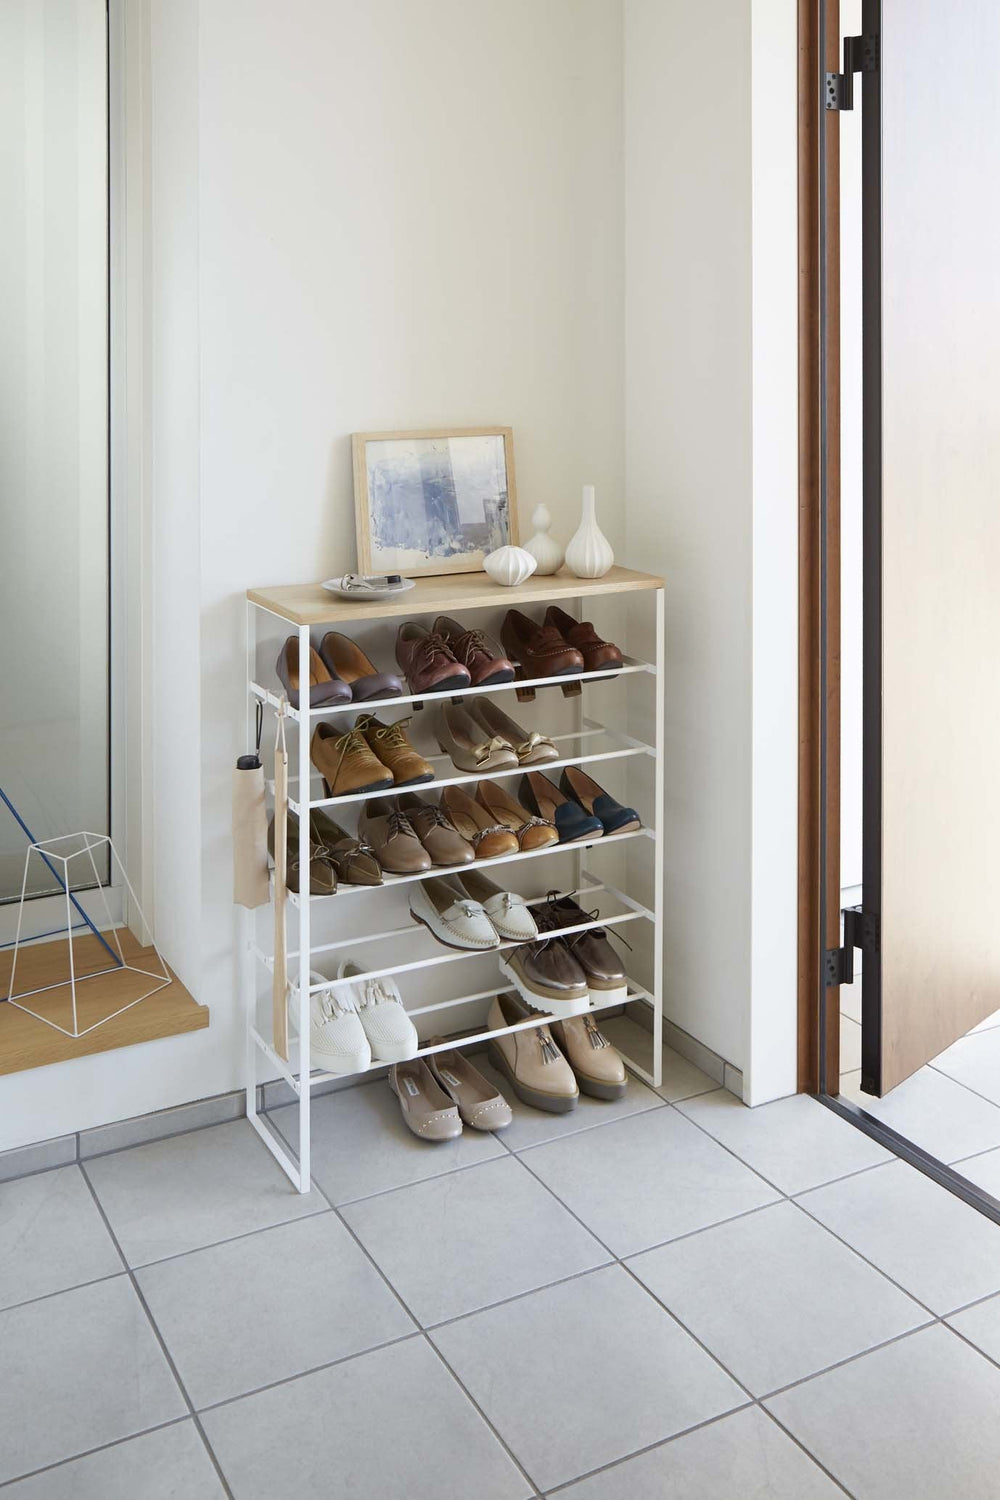 Yamazaki's White 6 Tier Wood Top Shoe Rack on a white background